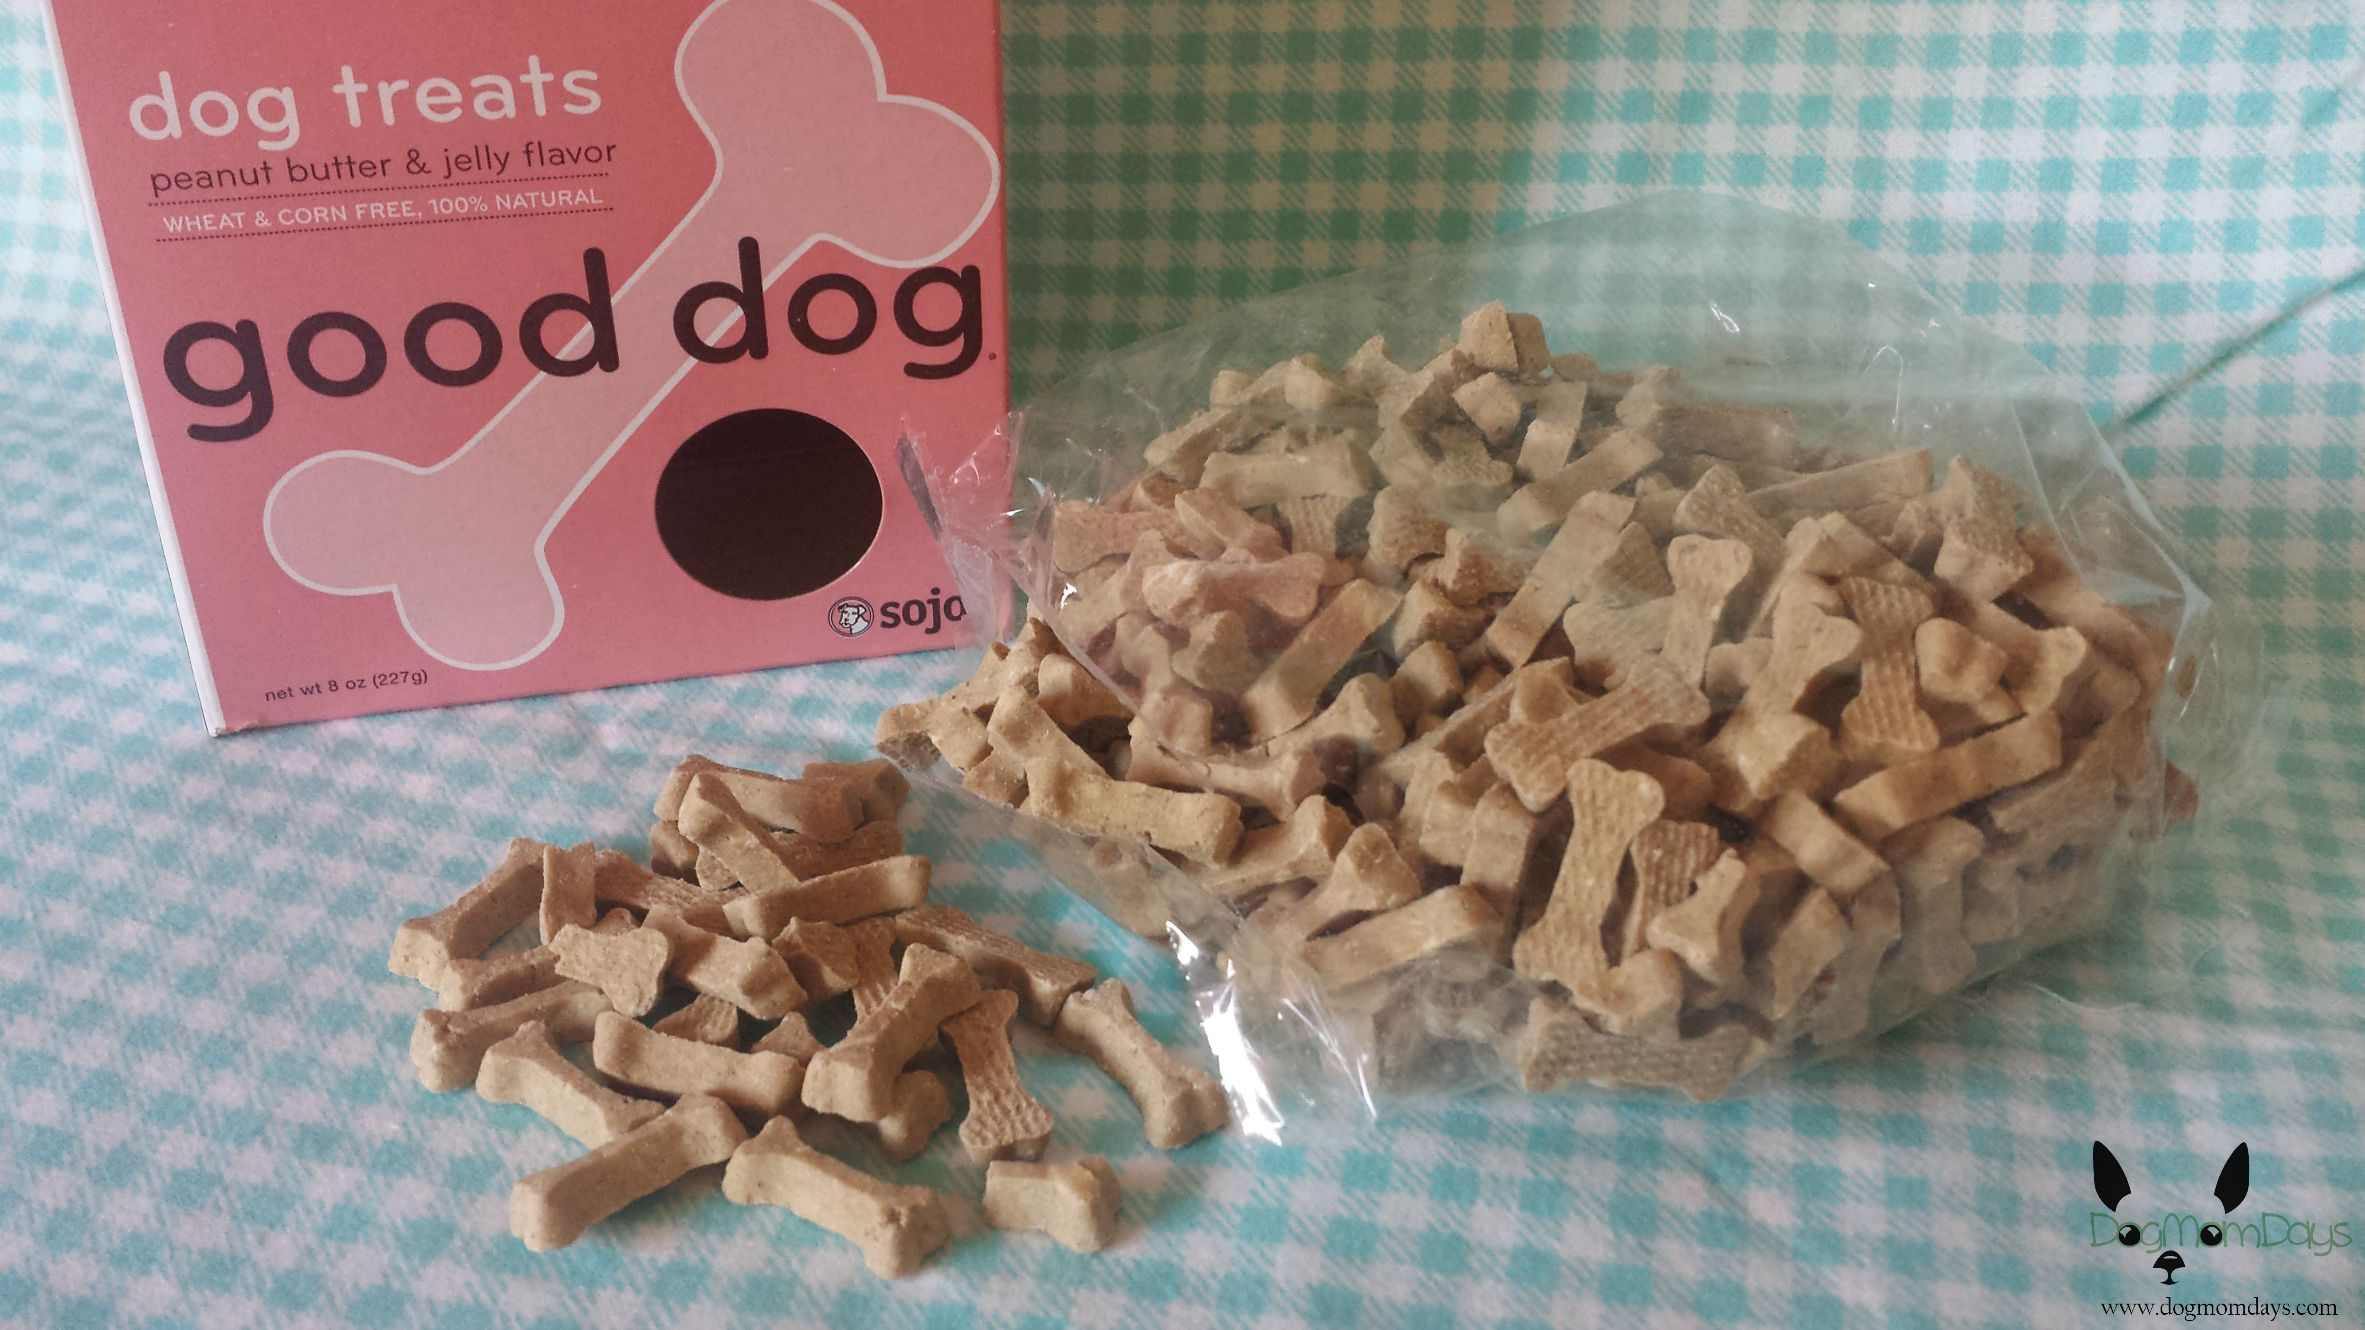 Product Review: Sojos Good Dog Dog Treats